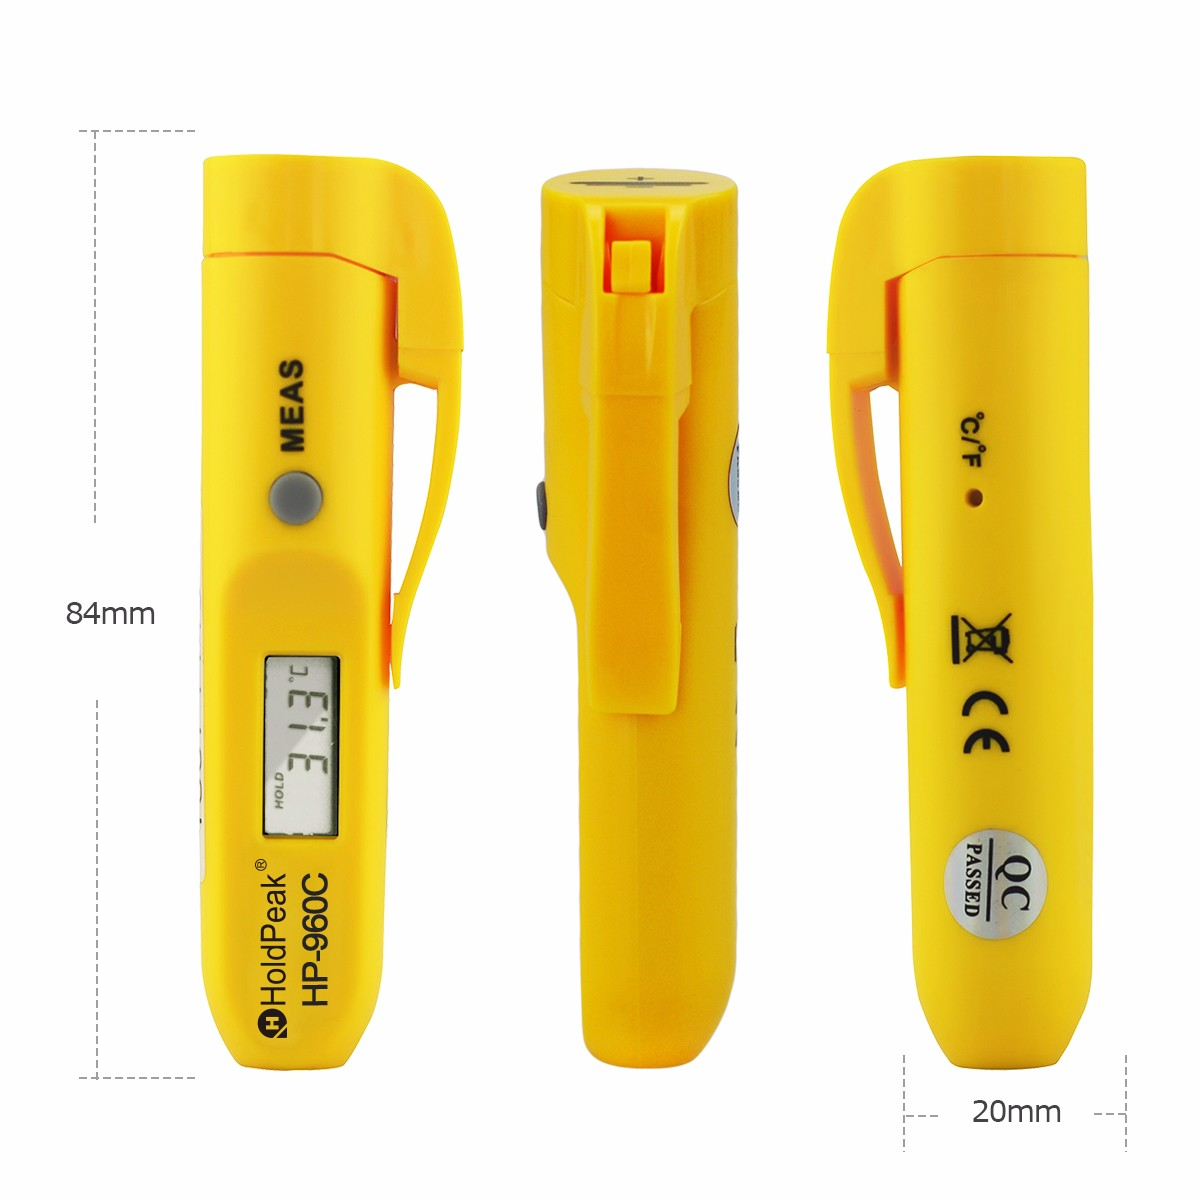 Pen Type Portable Handheld Digital Infrared Thermometer -30℃~275℃ Non Contact Laser